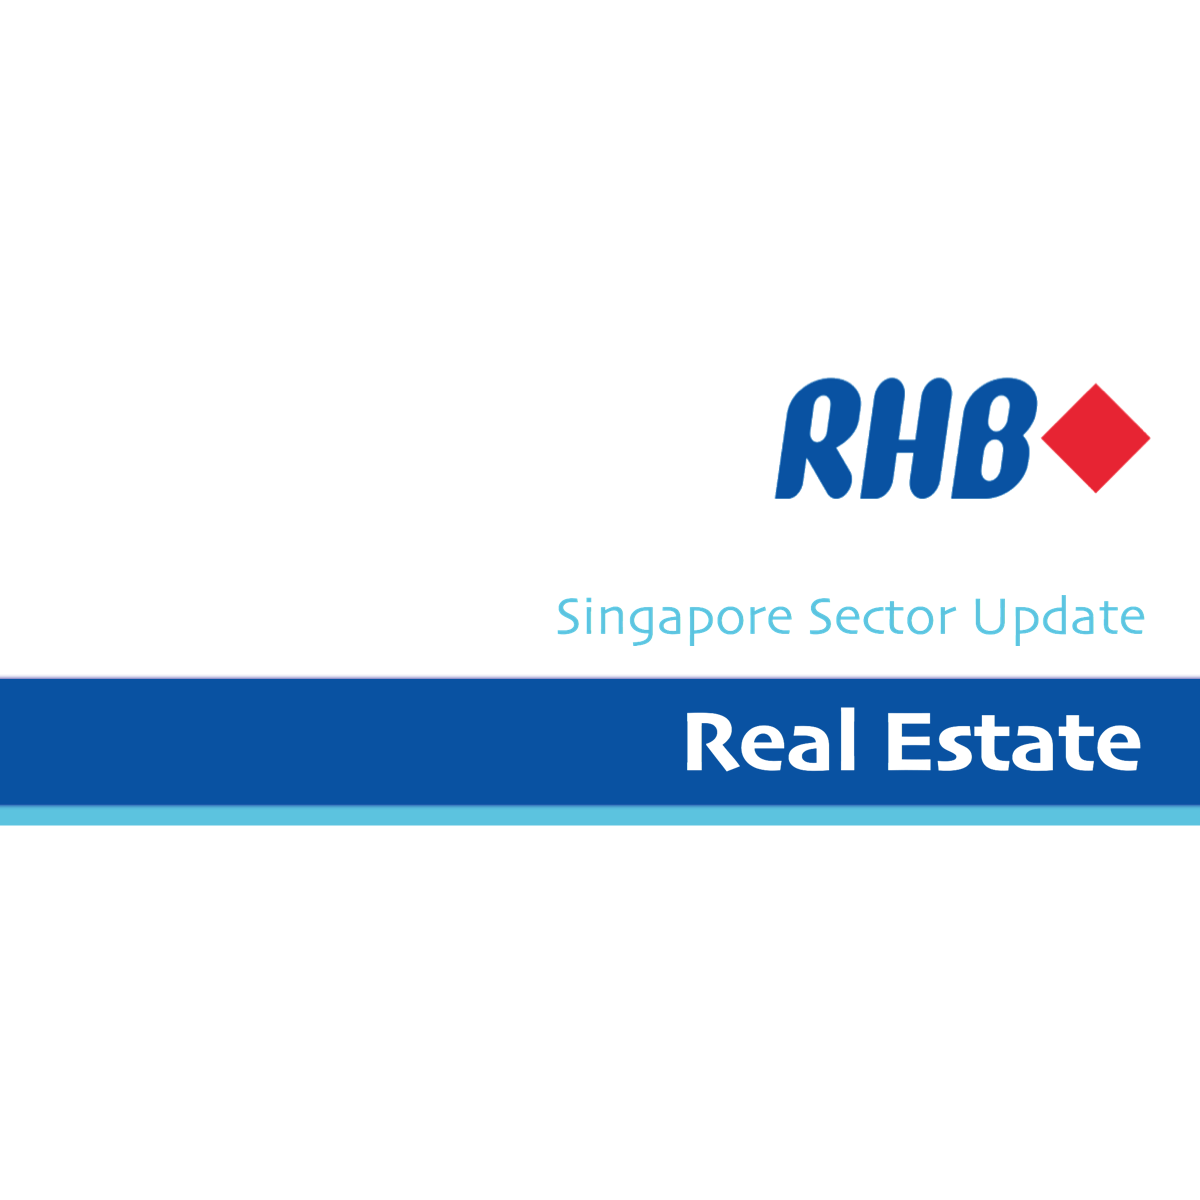 Real Estate - RHB Invest 2018-07-02: Near-term Outlook Remains Promising